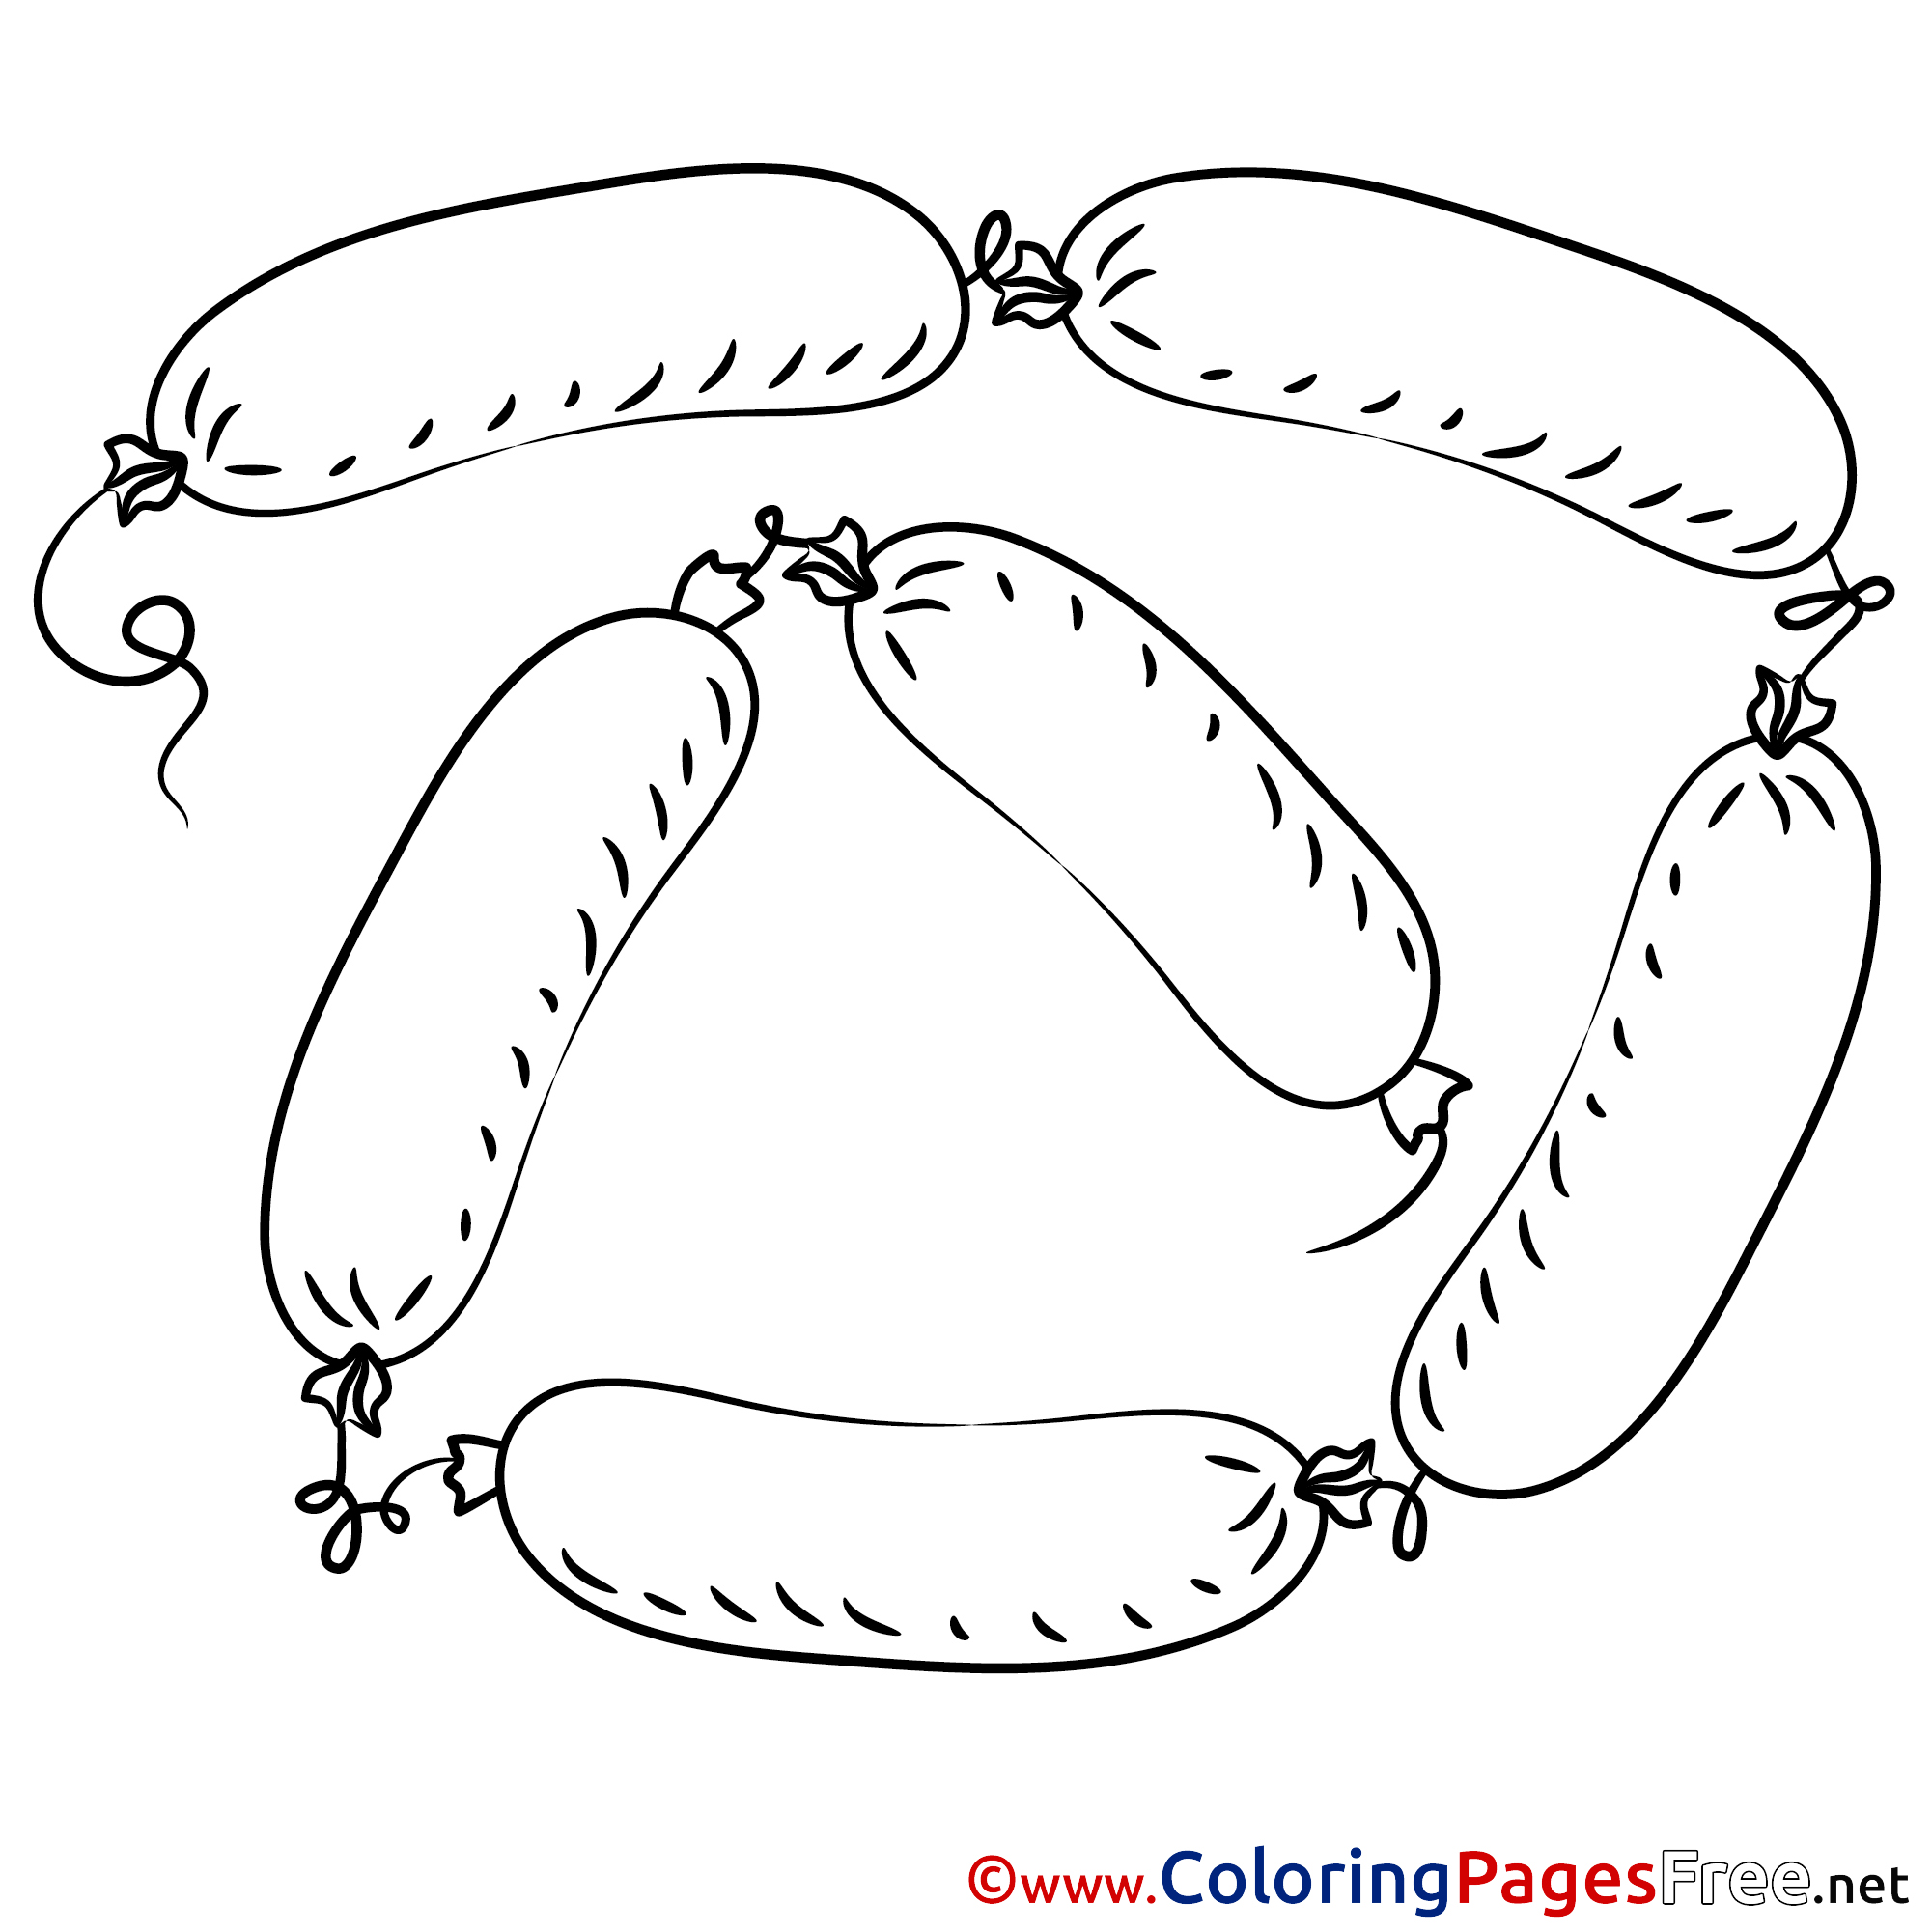 Sausages printable Coloring Pages for free